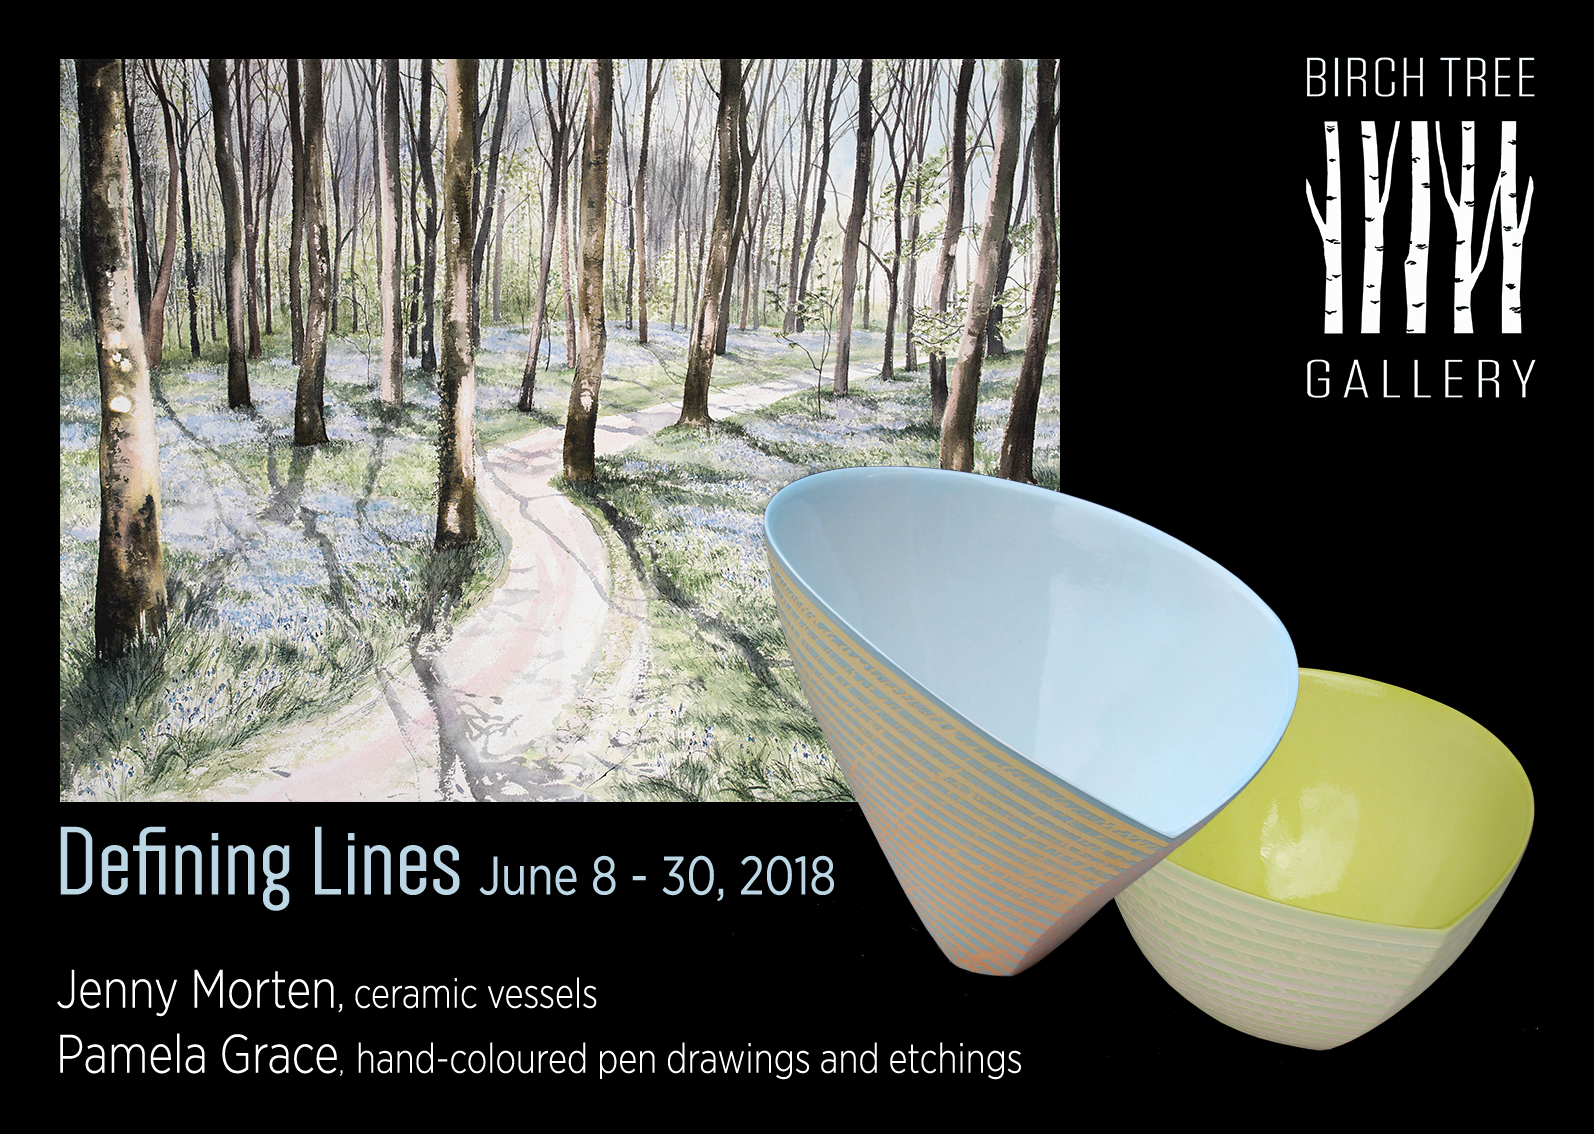 Birch Tree Gallery: Defining Lines